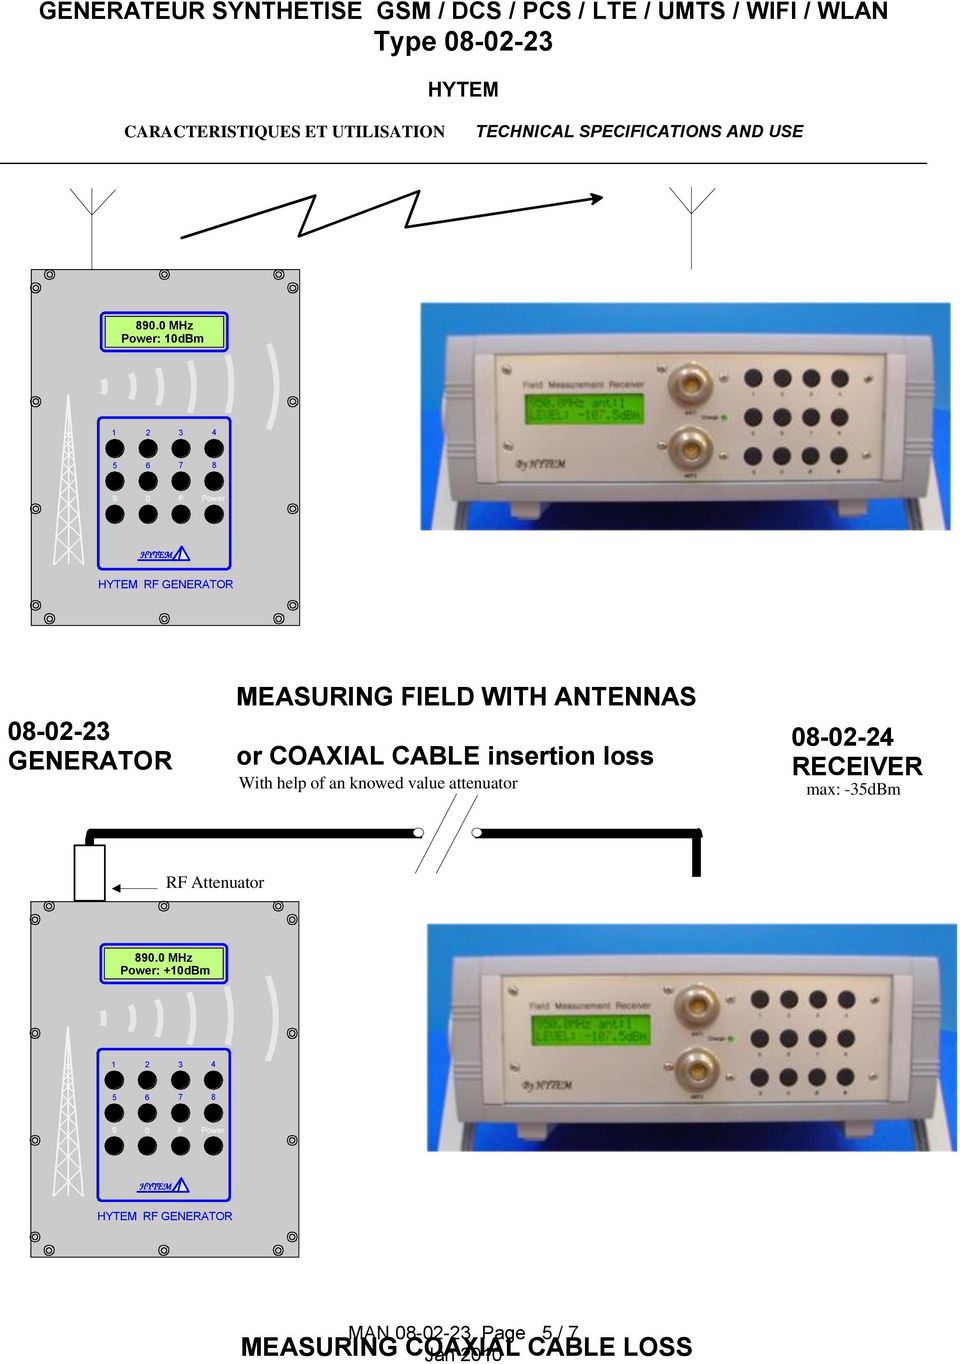 value attenuator 08-02-24 RECEIVER max: -35dBm RF Attenuator 890.